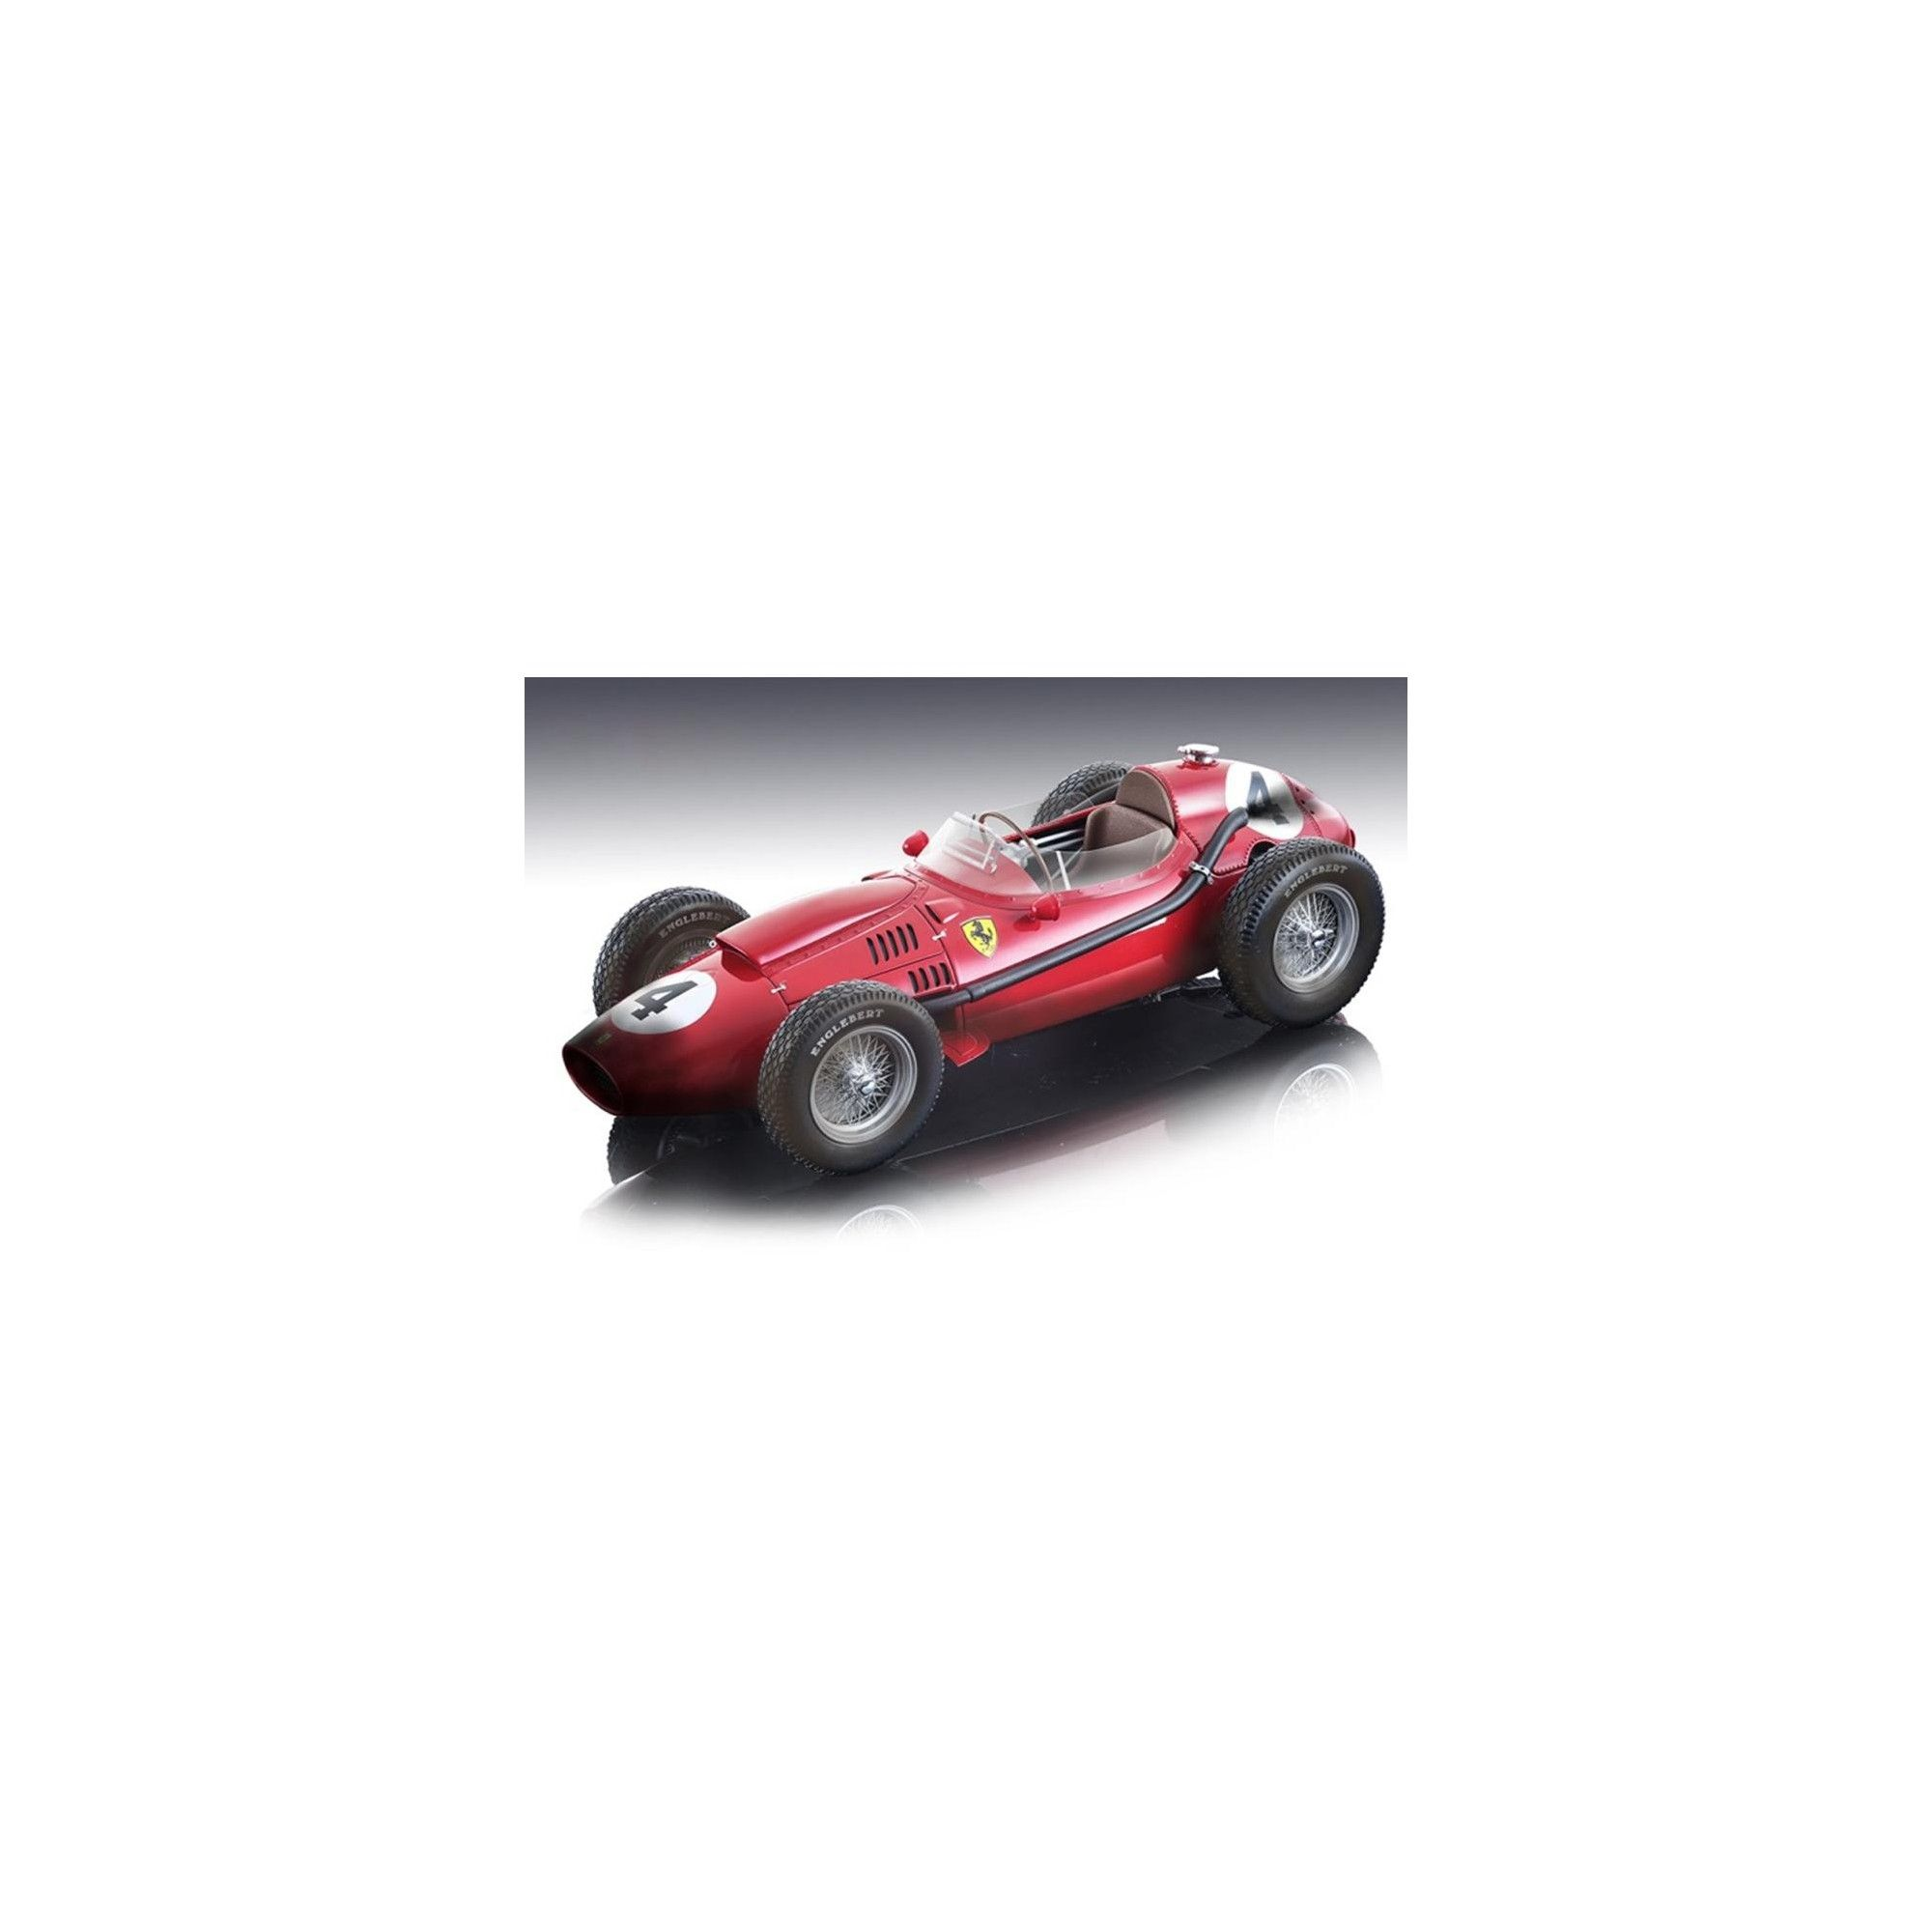 Ferrari Dino 246 #4 Mike Hawthorn Winner F1 France GP 1958 (After the Race) Ltd Ed 200 pcs 1/18 Model Car by Tecnomodel